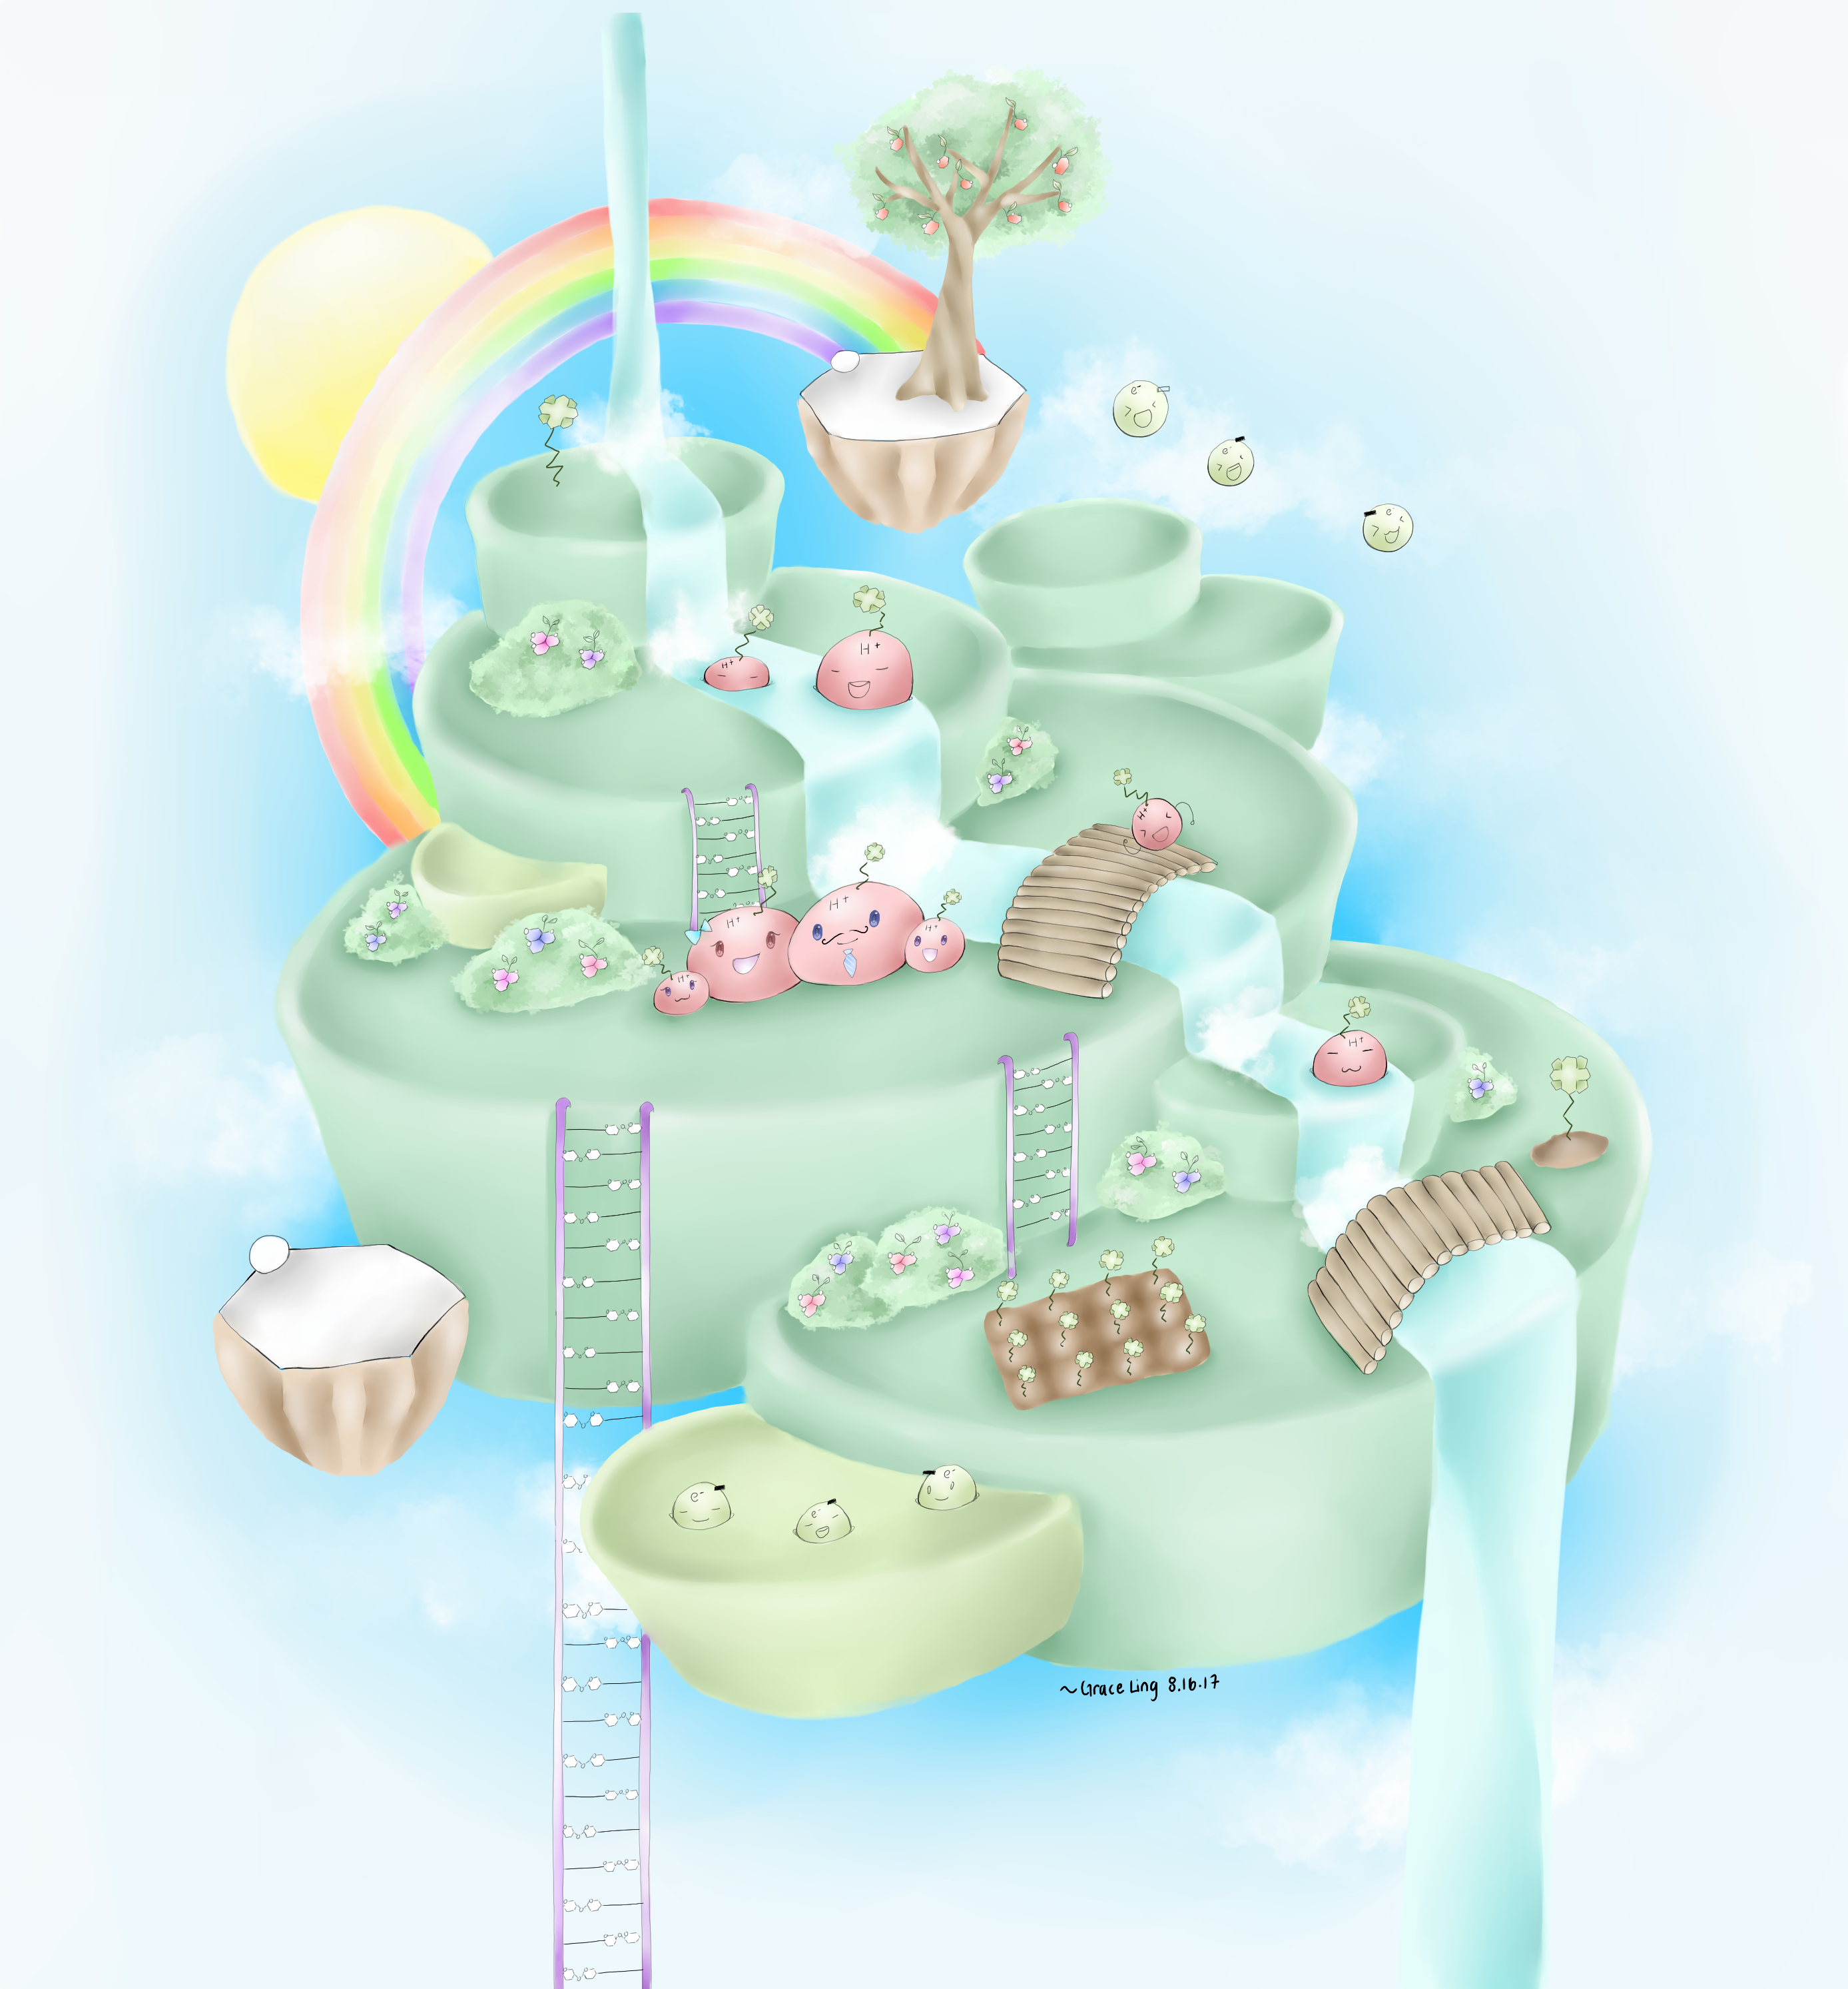 A multi-level illustrated island from the game Cell-fie